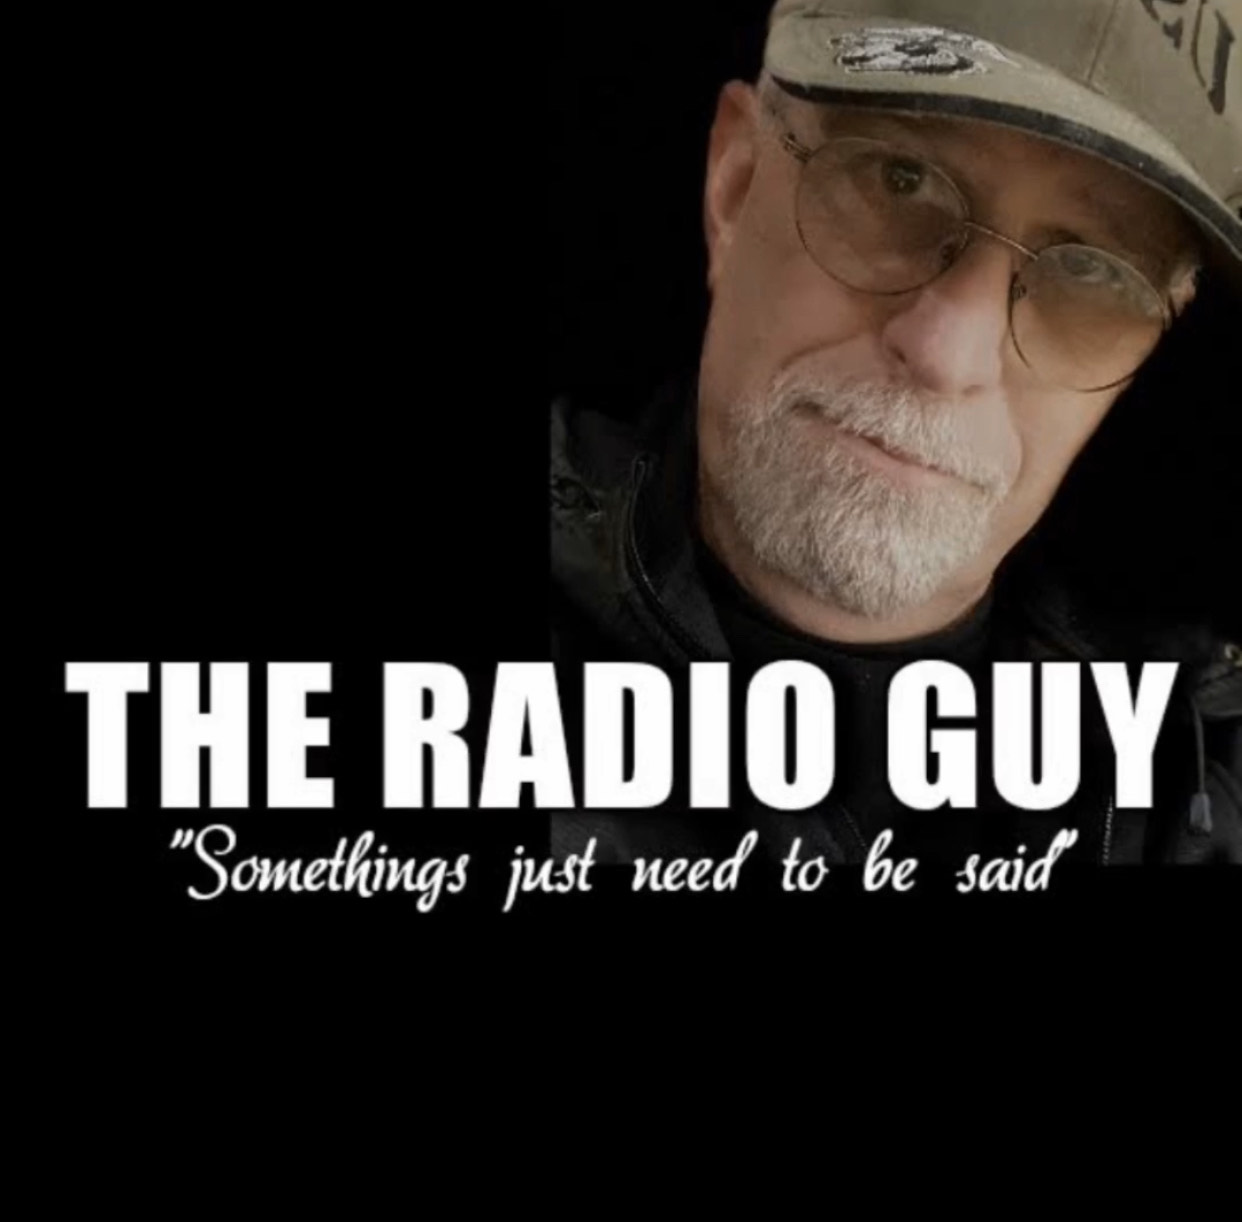 THE RADIO GUY LIVE RADIO SHOW